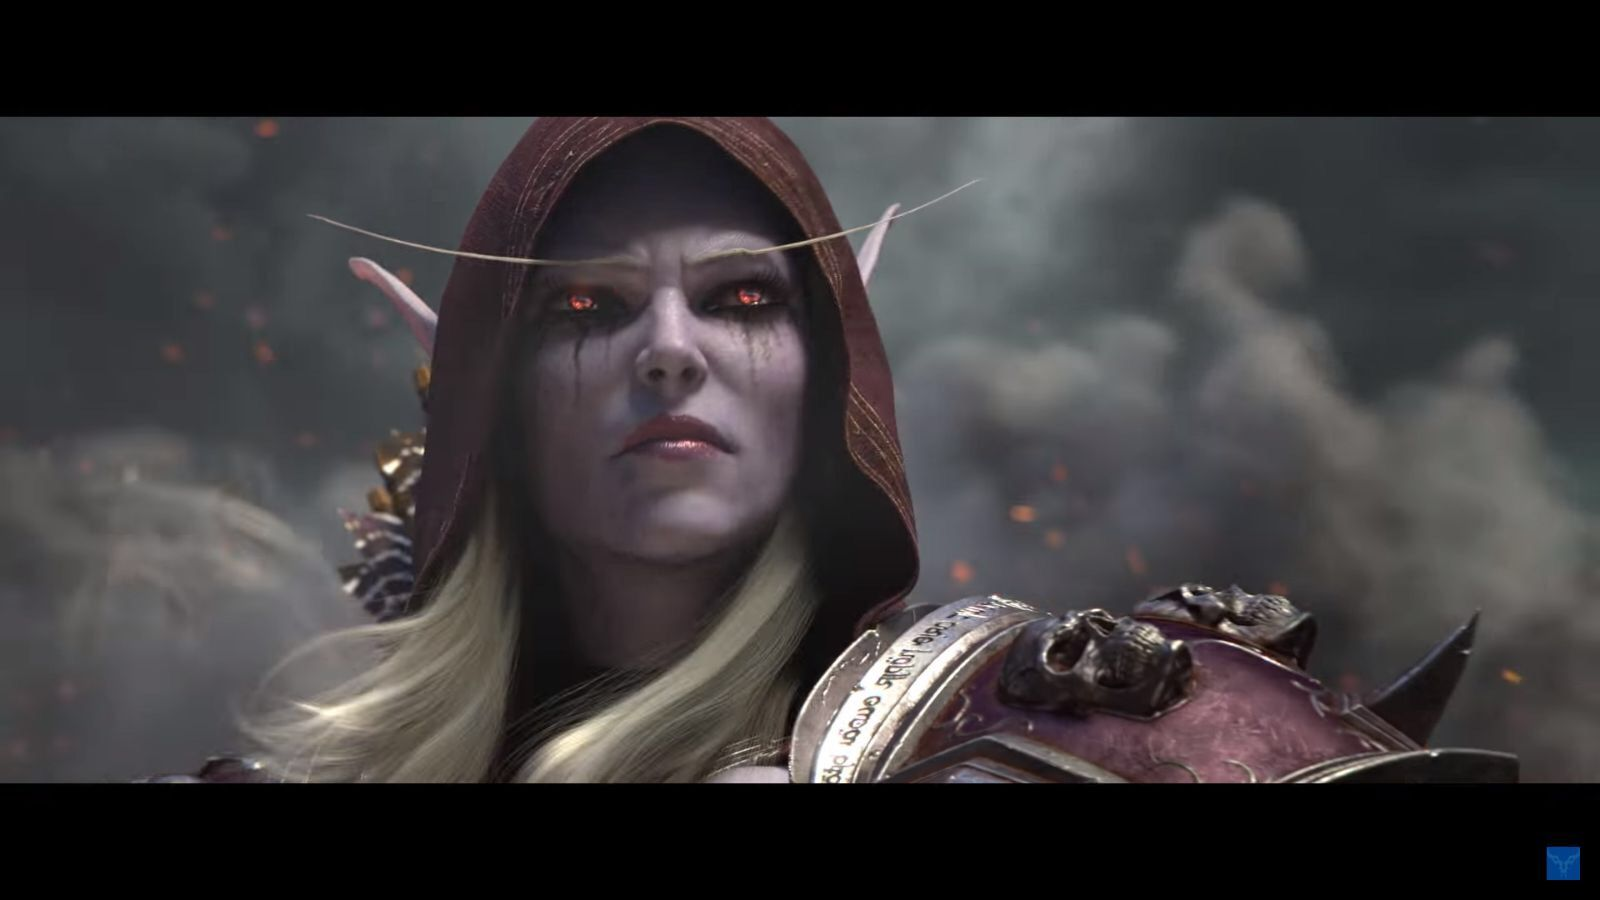 Battle For Azeroth With Images Sylvanas Windrunner World Of